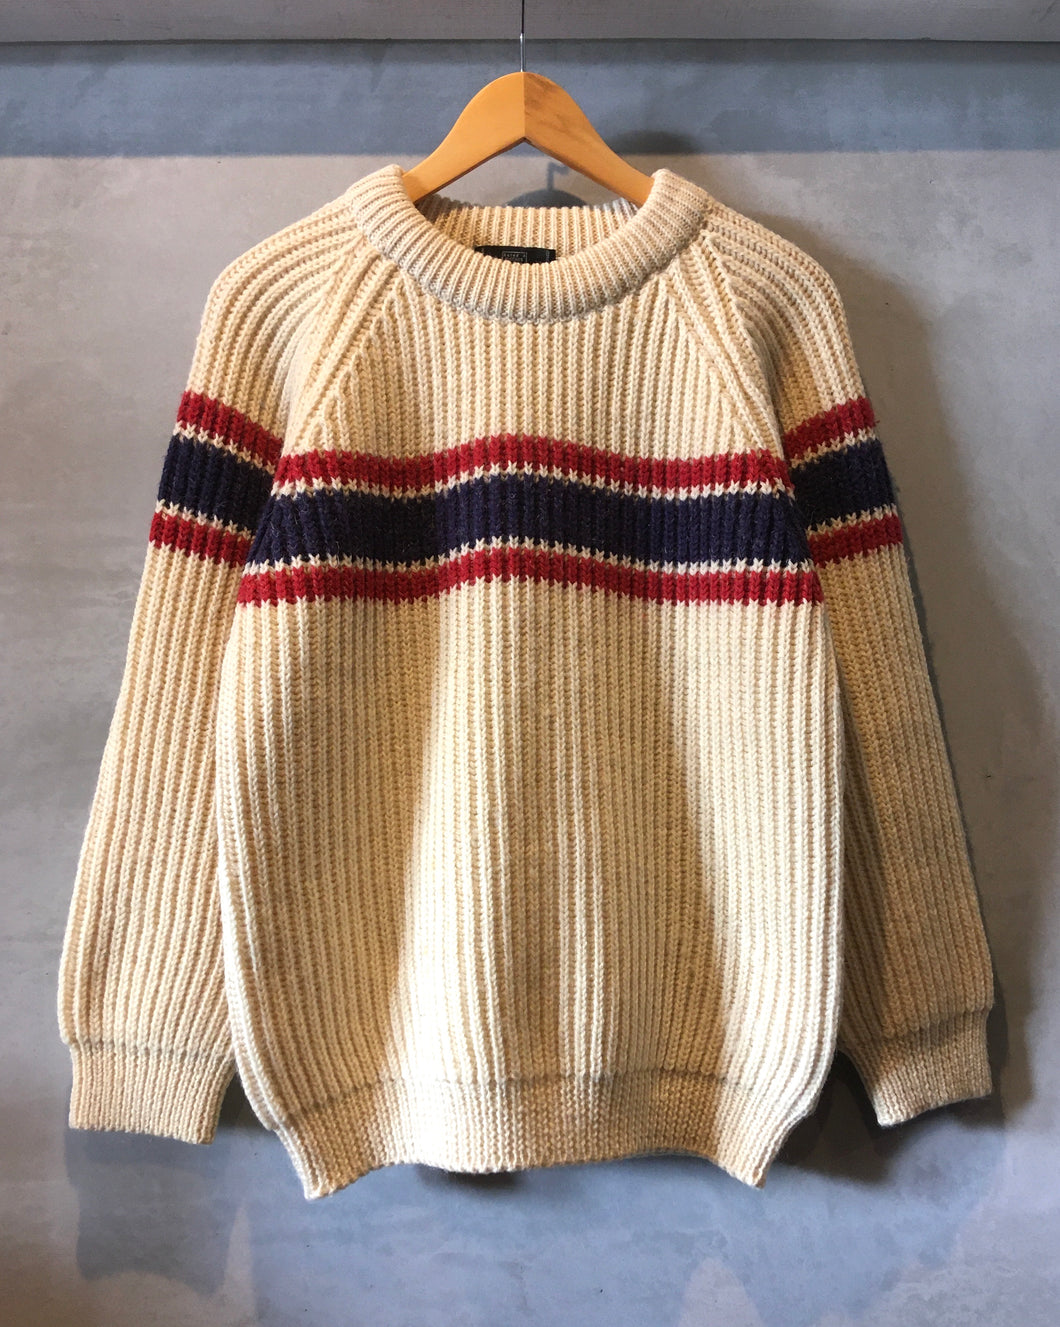 Rated R CLOTHES-Tricolore knit-(size M)Made in ENGLAND